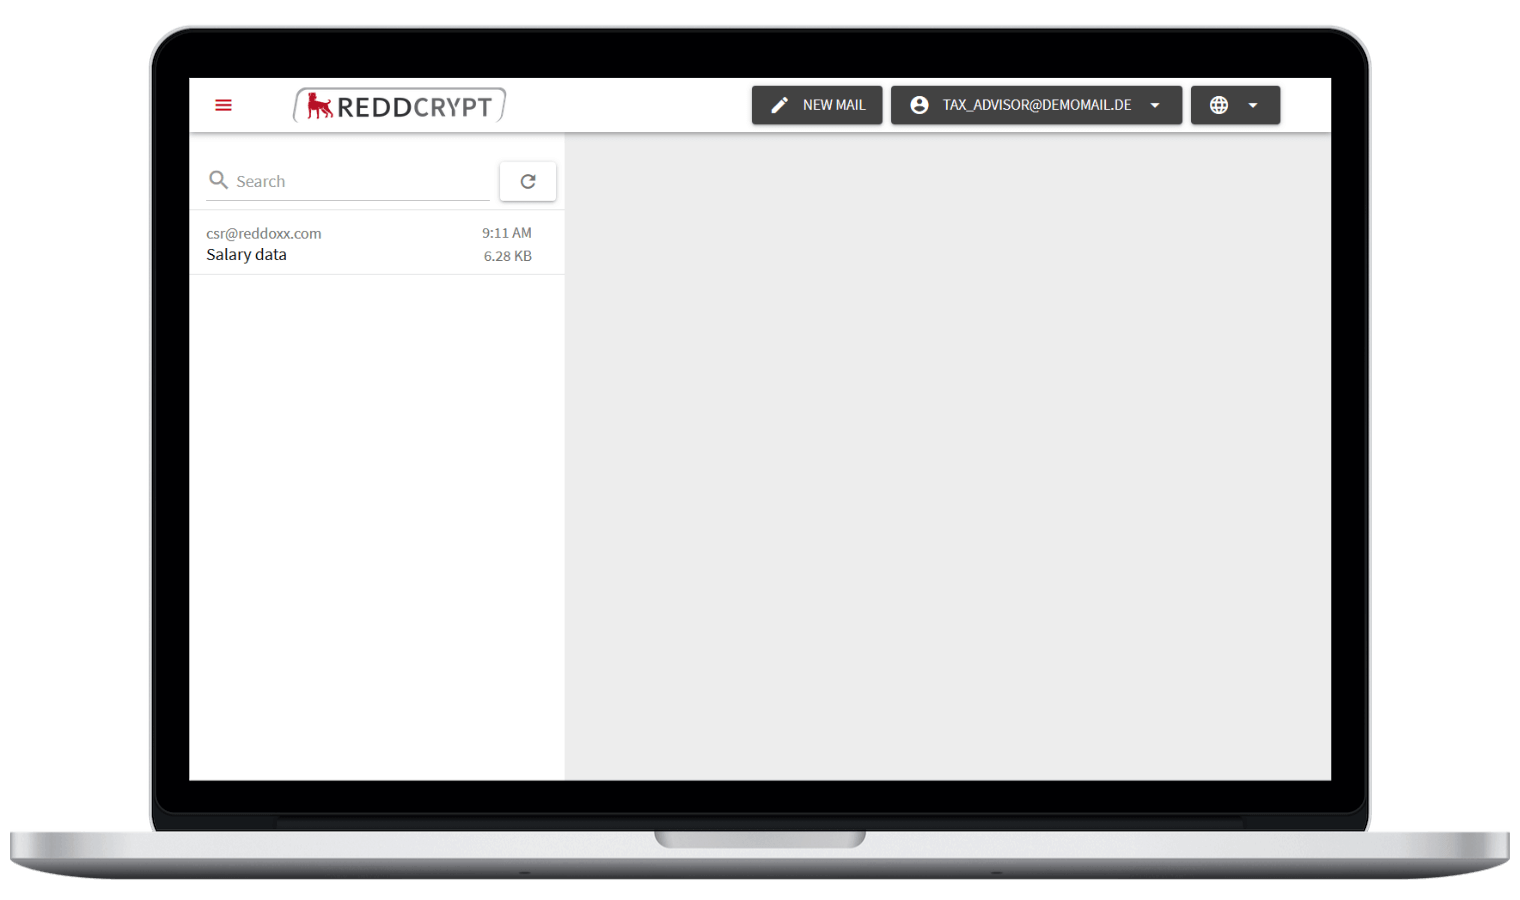 After a free registration the recipient can access your encrypted e-mail